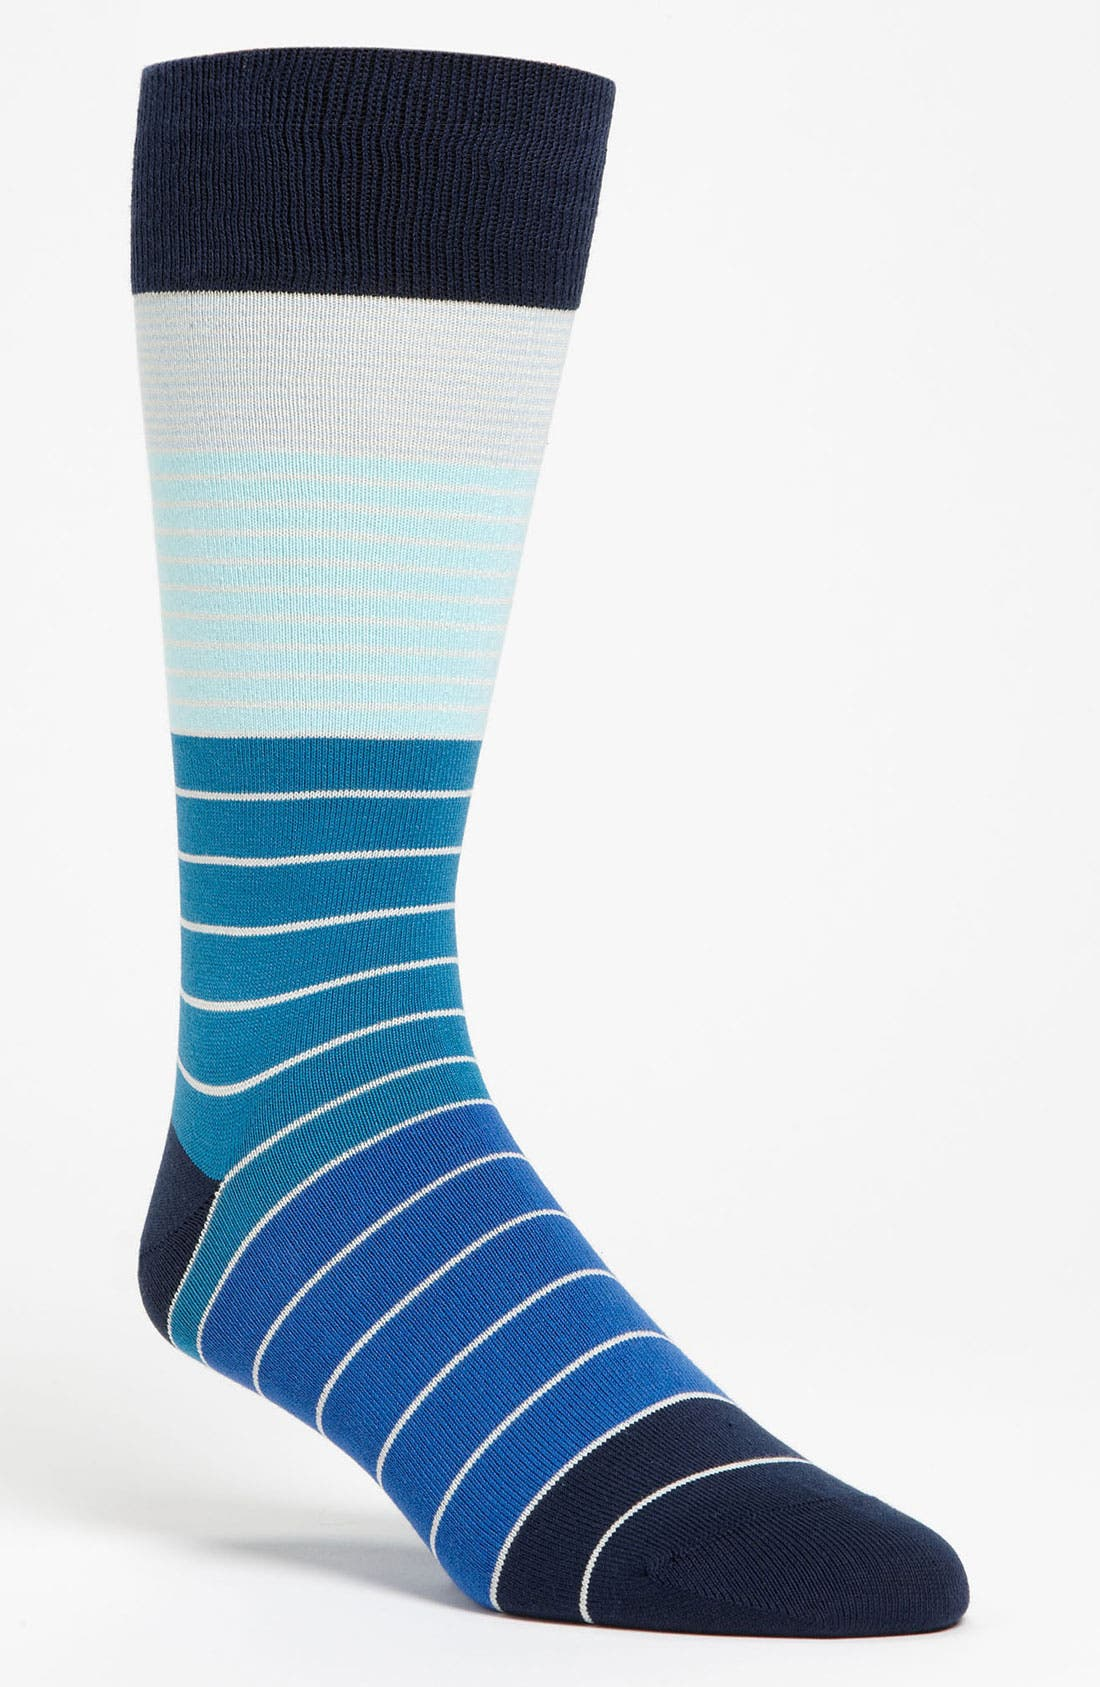 Alternate Image 1 Selected - Paul Smith Accessories Colorblock Stripe Socks